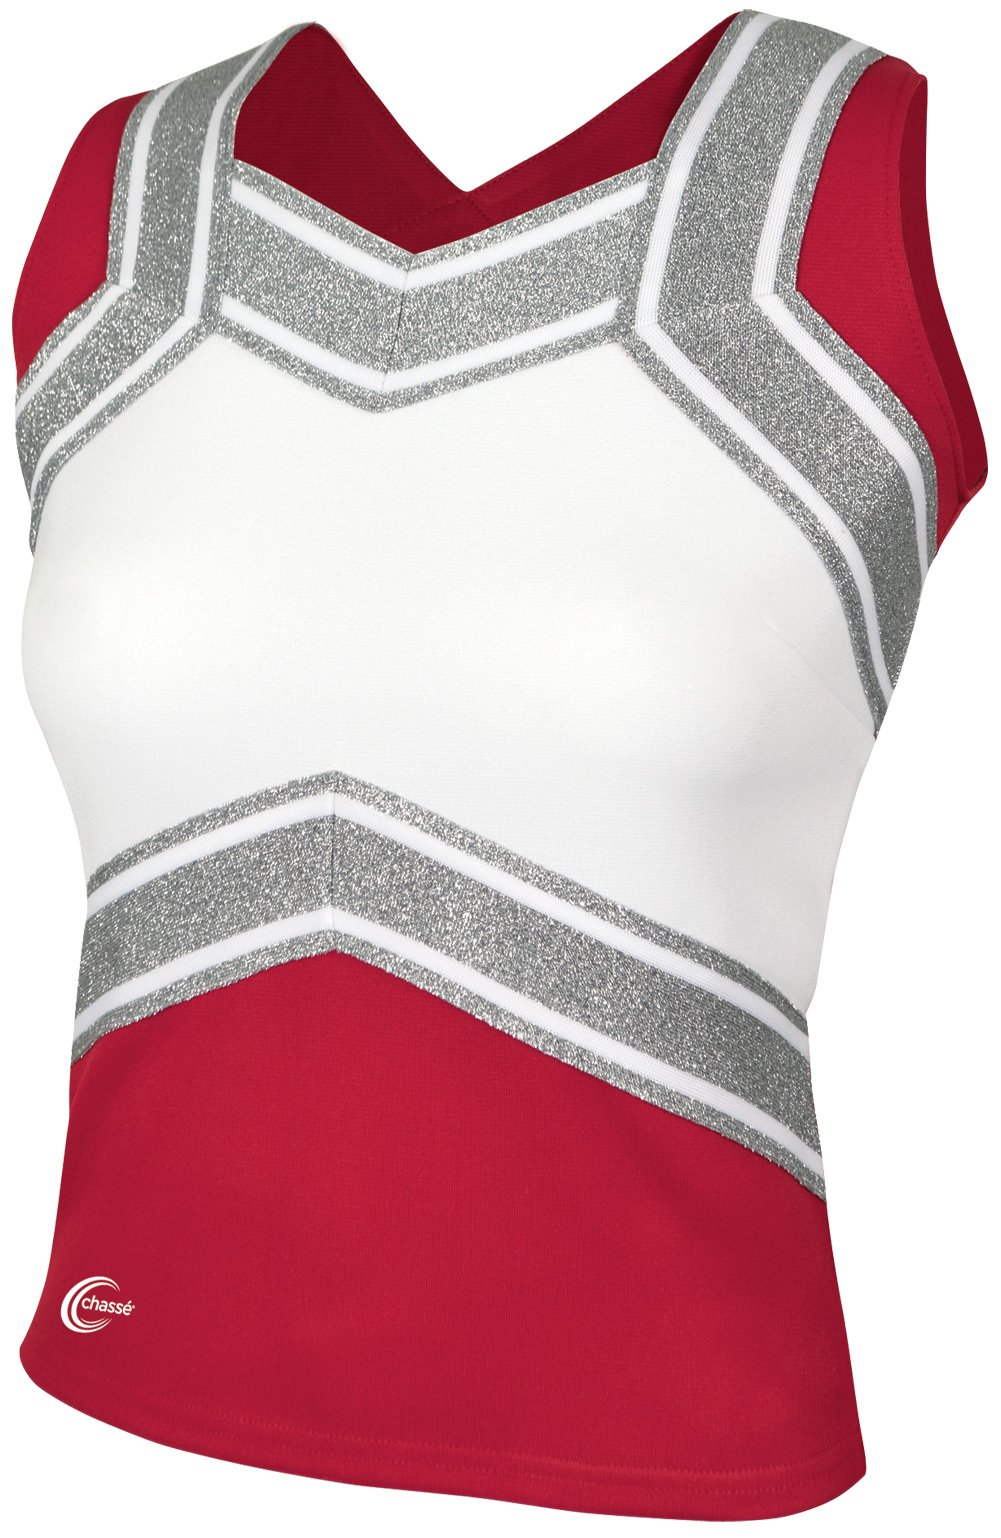 Chassé Girls' Blaze Shell Top Red/White/Metallic Silver Youth X-Small